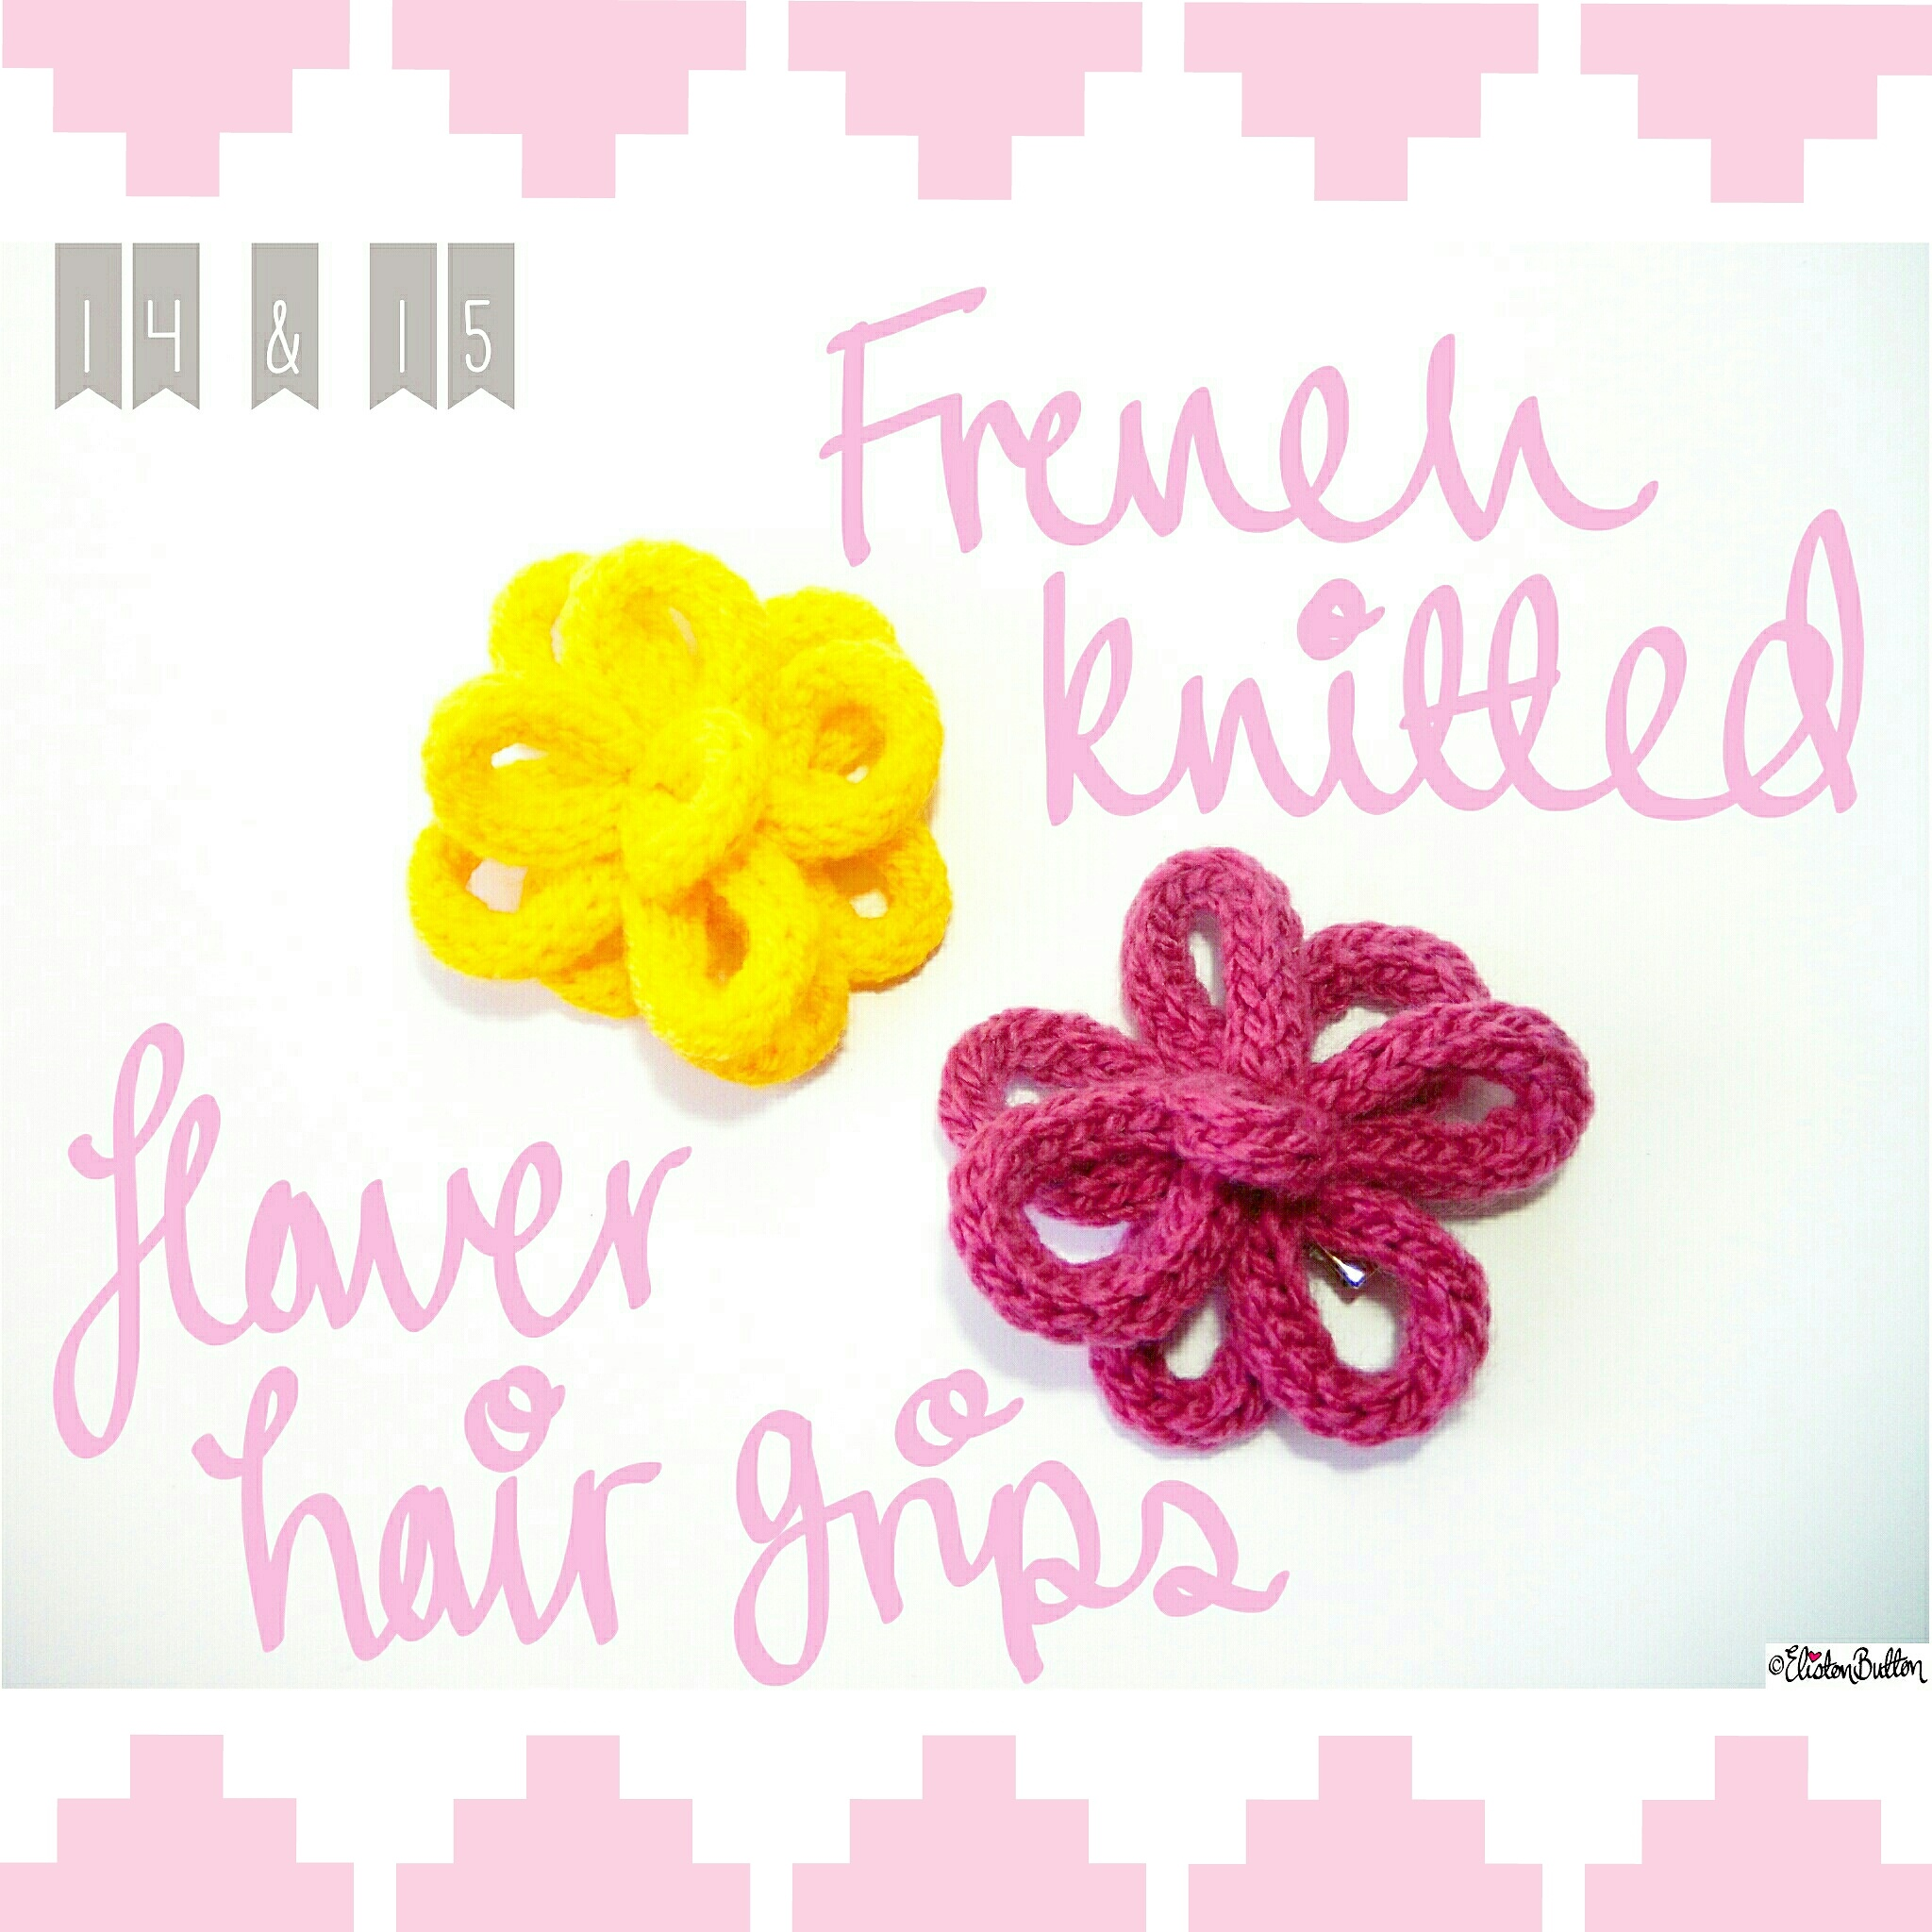 French Knitted Flower Hair Grips - Create 28 - I Did It! (a.k.a. My Therapy Session) at www.elistonbutton.com - Eliston Button - That Crafty Kid – Art, Design, Craft & Adventure.